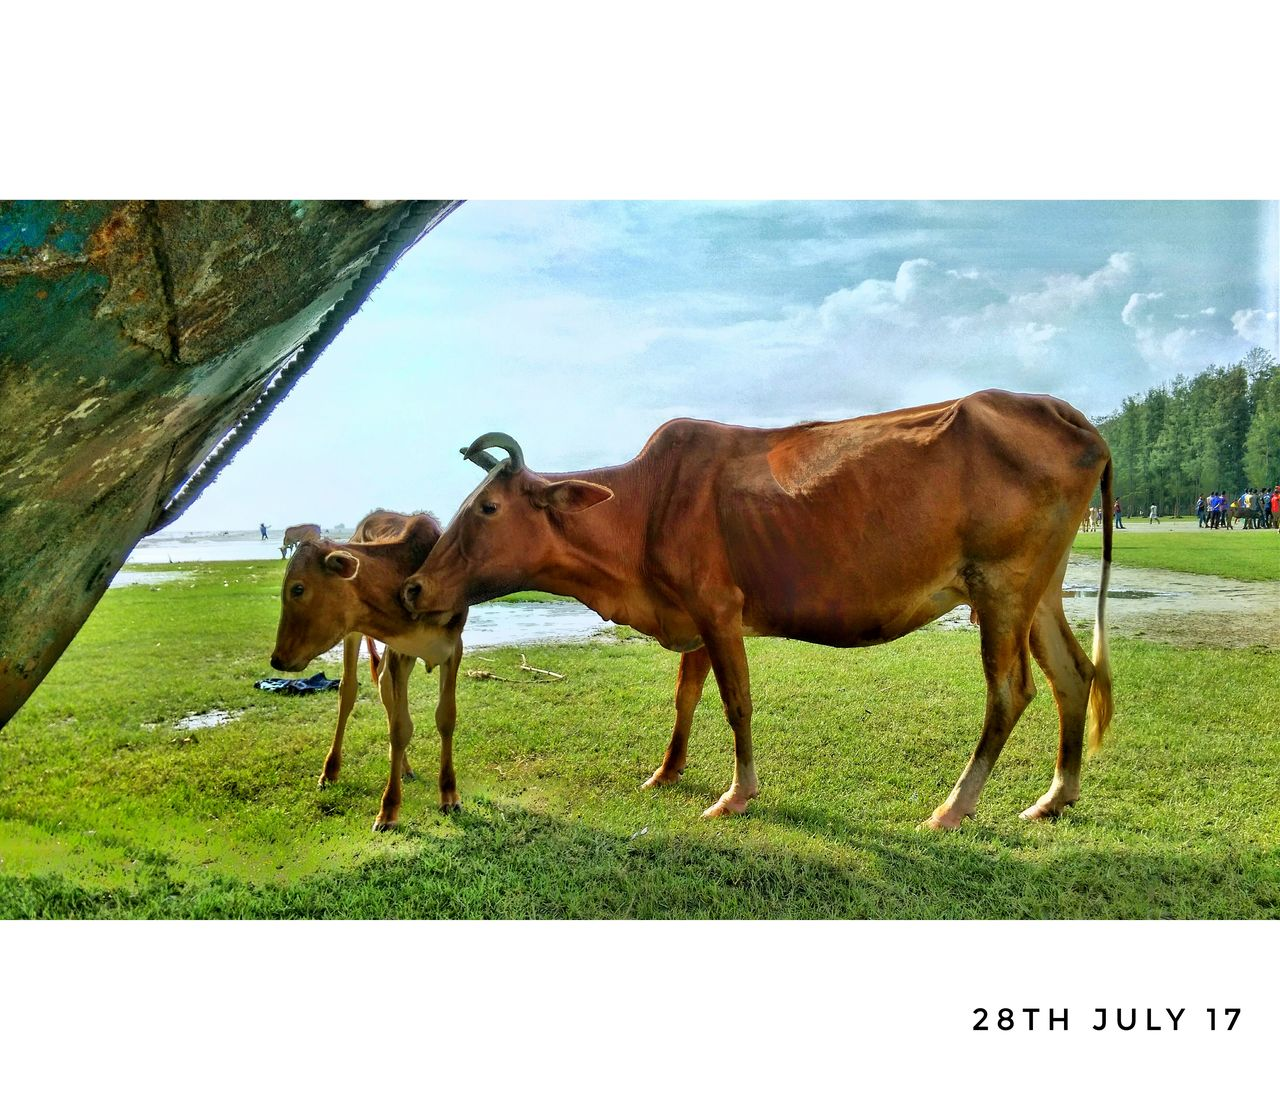 grass, animal themes, domestic animals, livestock, mammal, field, nature, day, cow, outdoors, grazing, no people, sky, tree